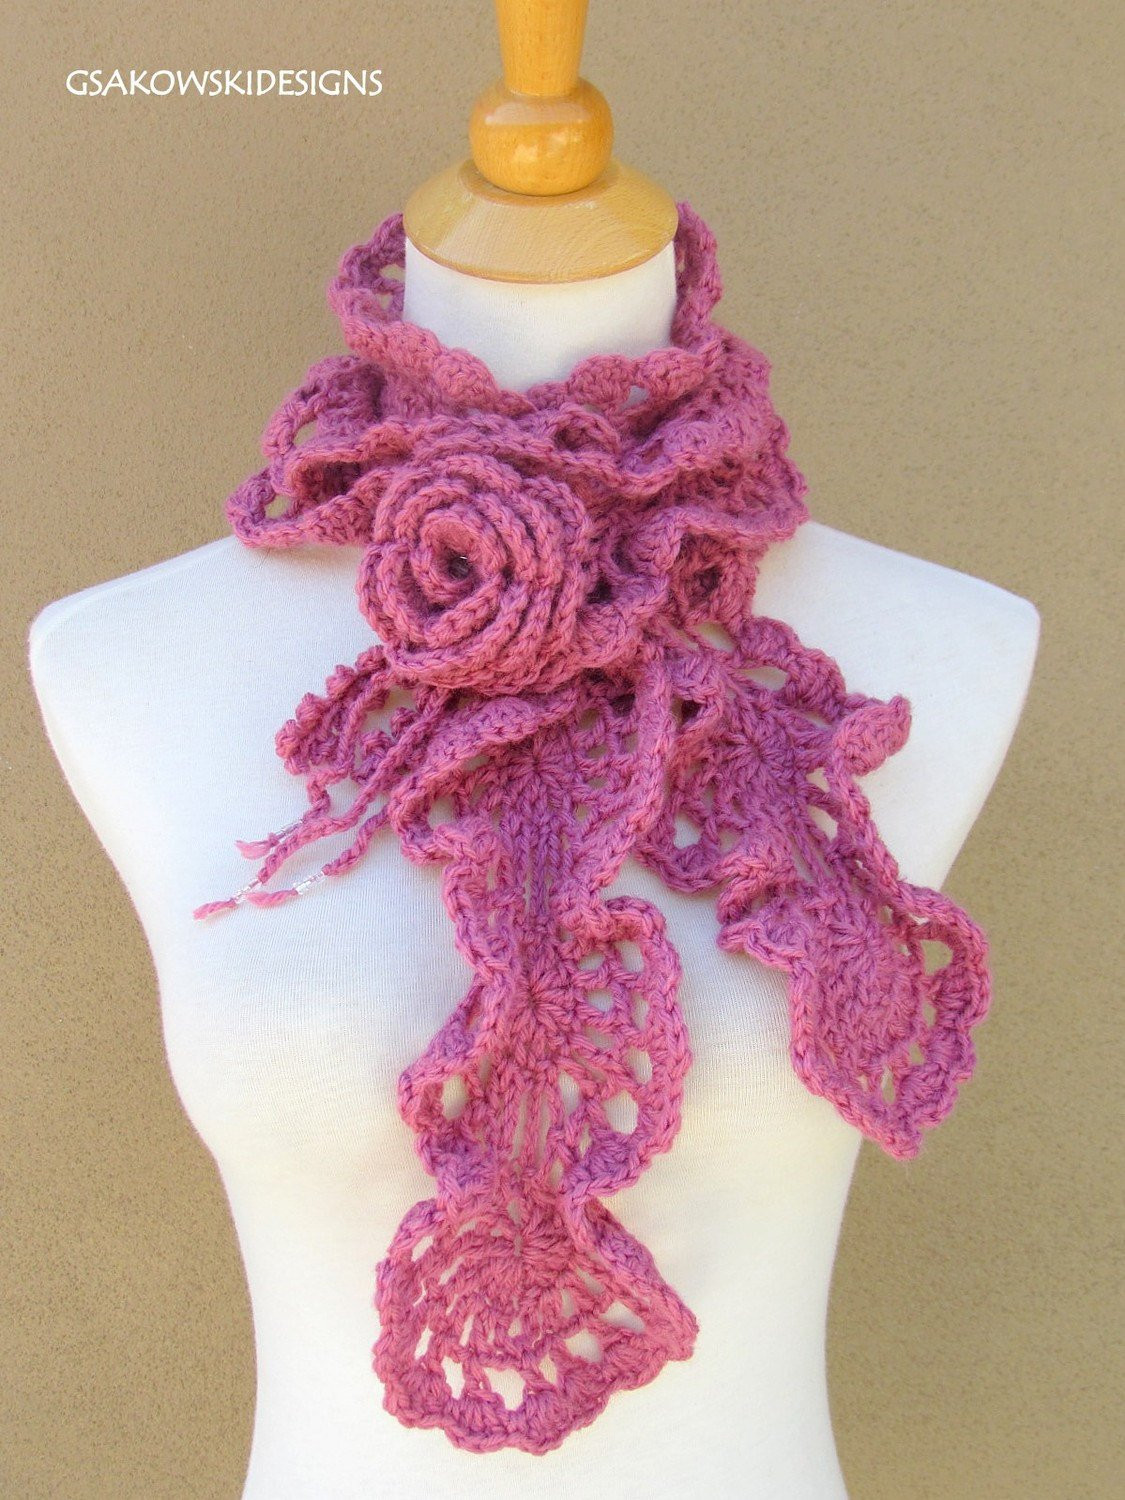 Crochet Scarves Patterns Fresh Crochet Ribbed Scarf Pattern – Crochet Club Of Adorable 49 Models Crochet Scarves Patterns